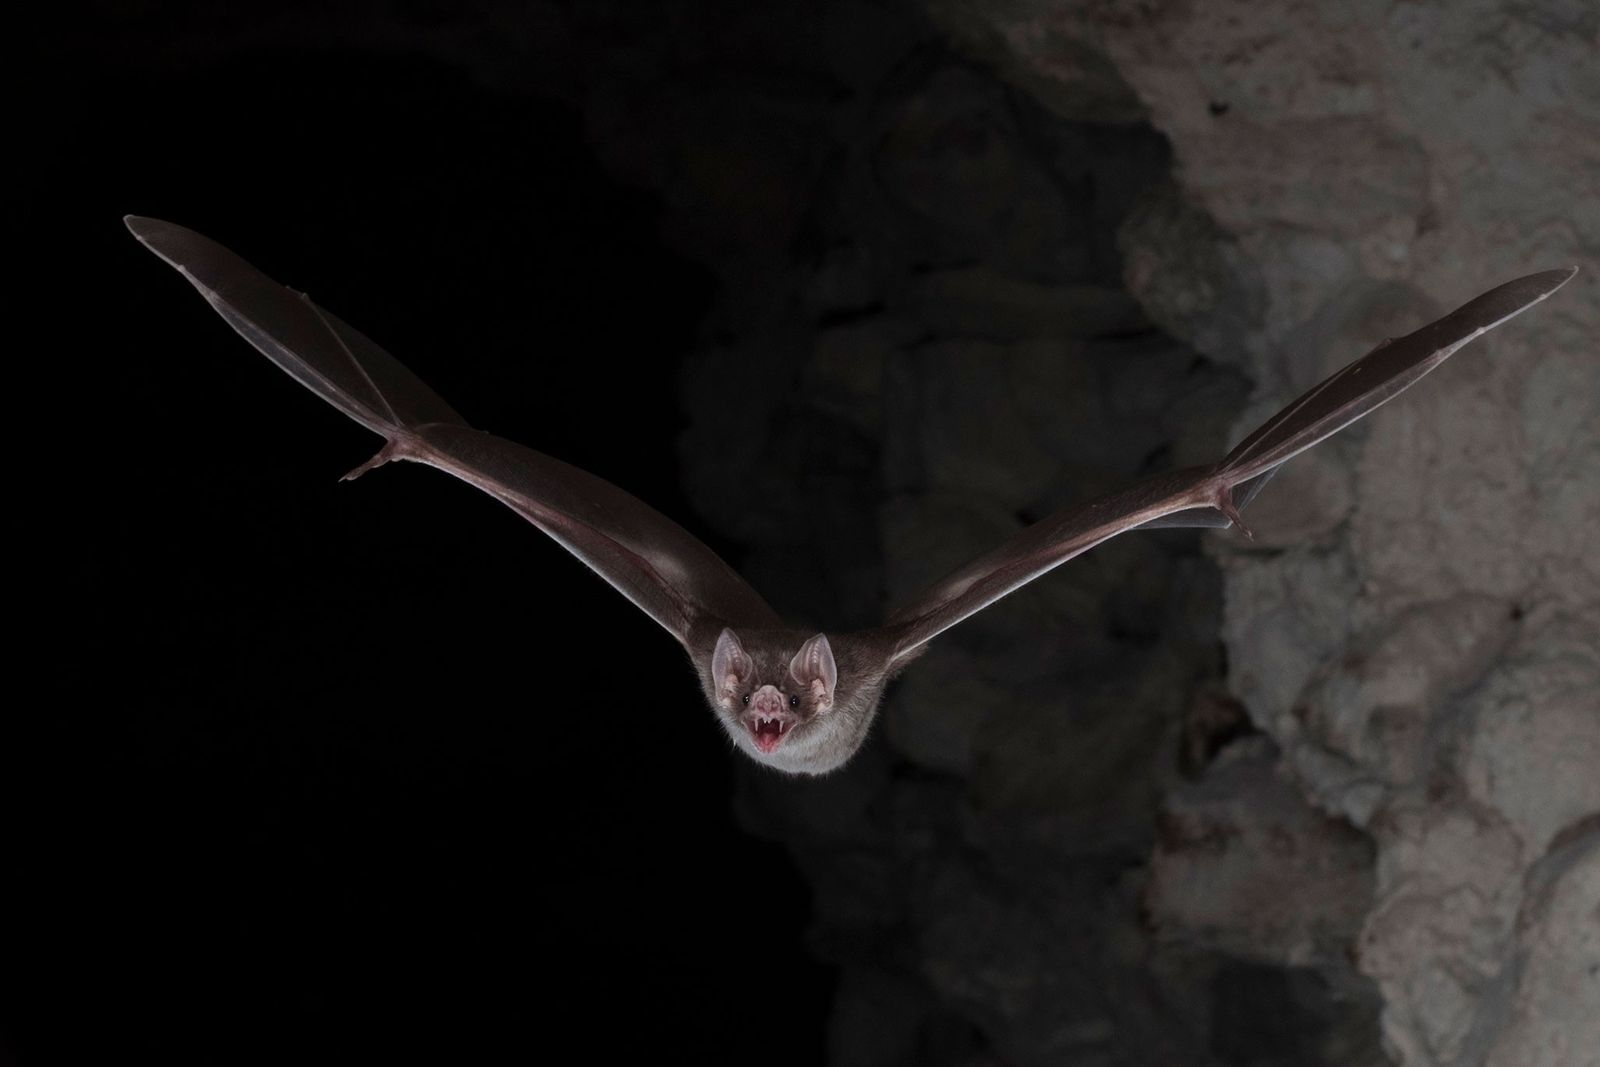 Vampire bats are equipped with vein sensors that allow them to easily find their prey.